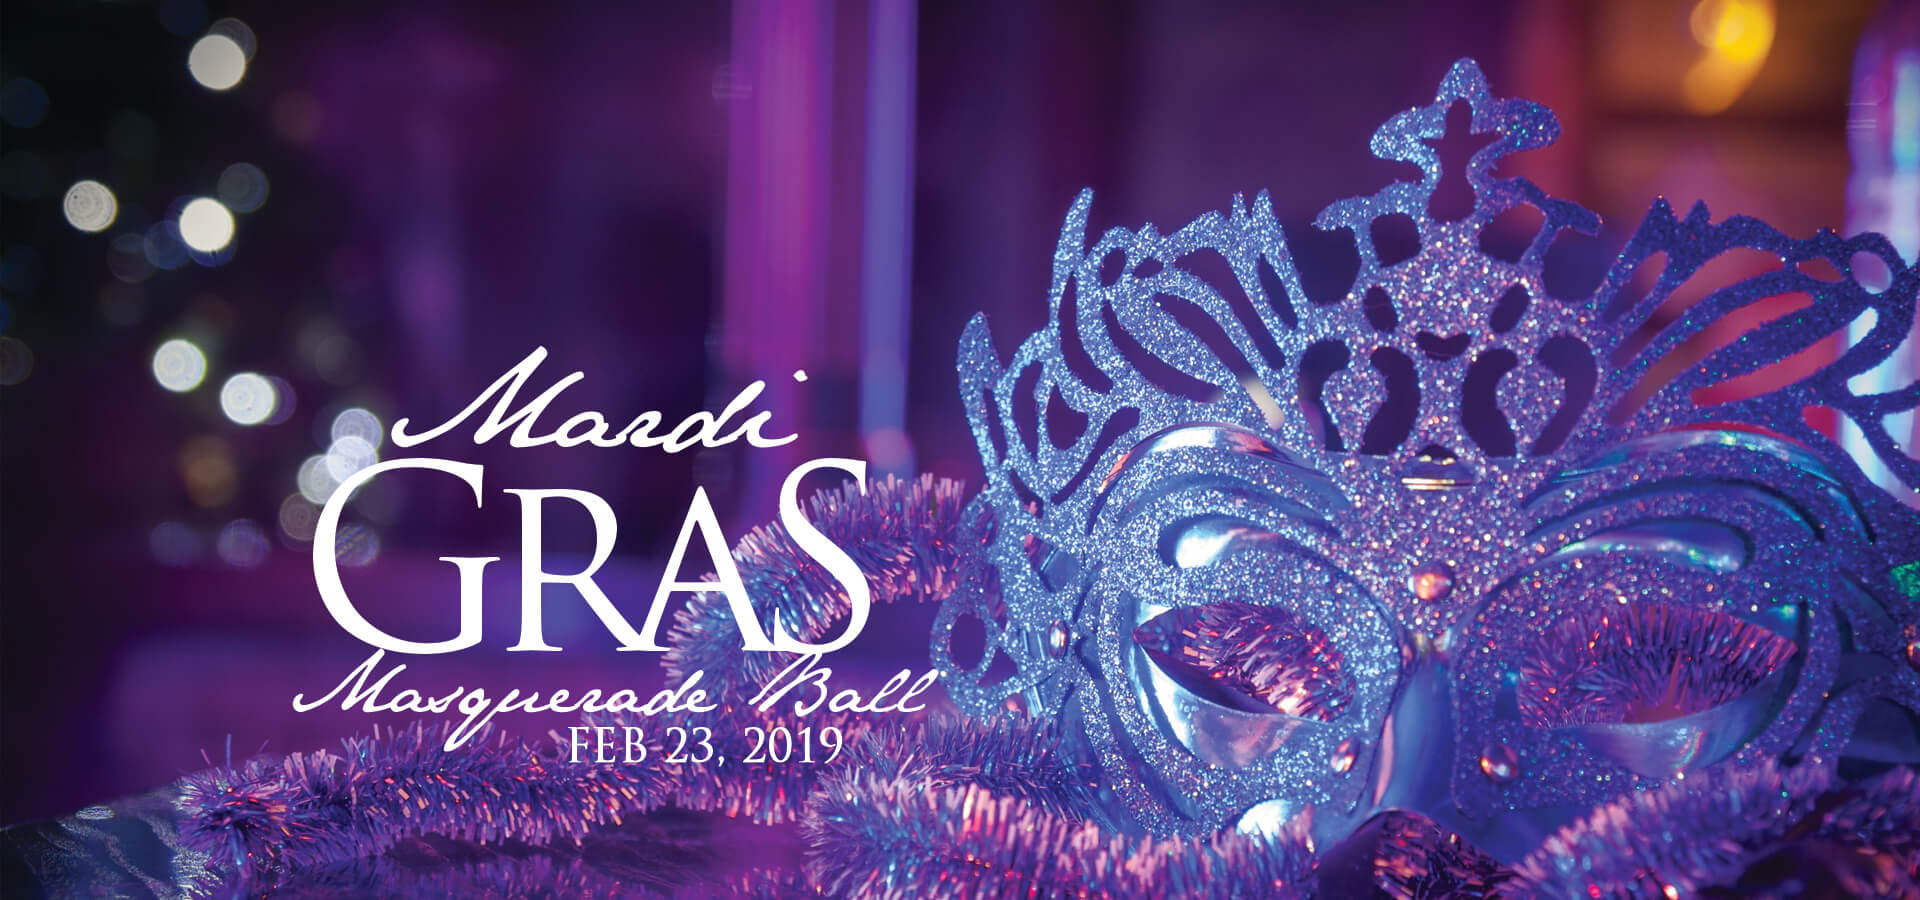 Mardi Gras Masquerade Ball 2019 with Joliet Junior Woman's Club